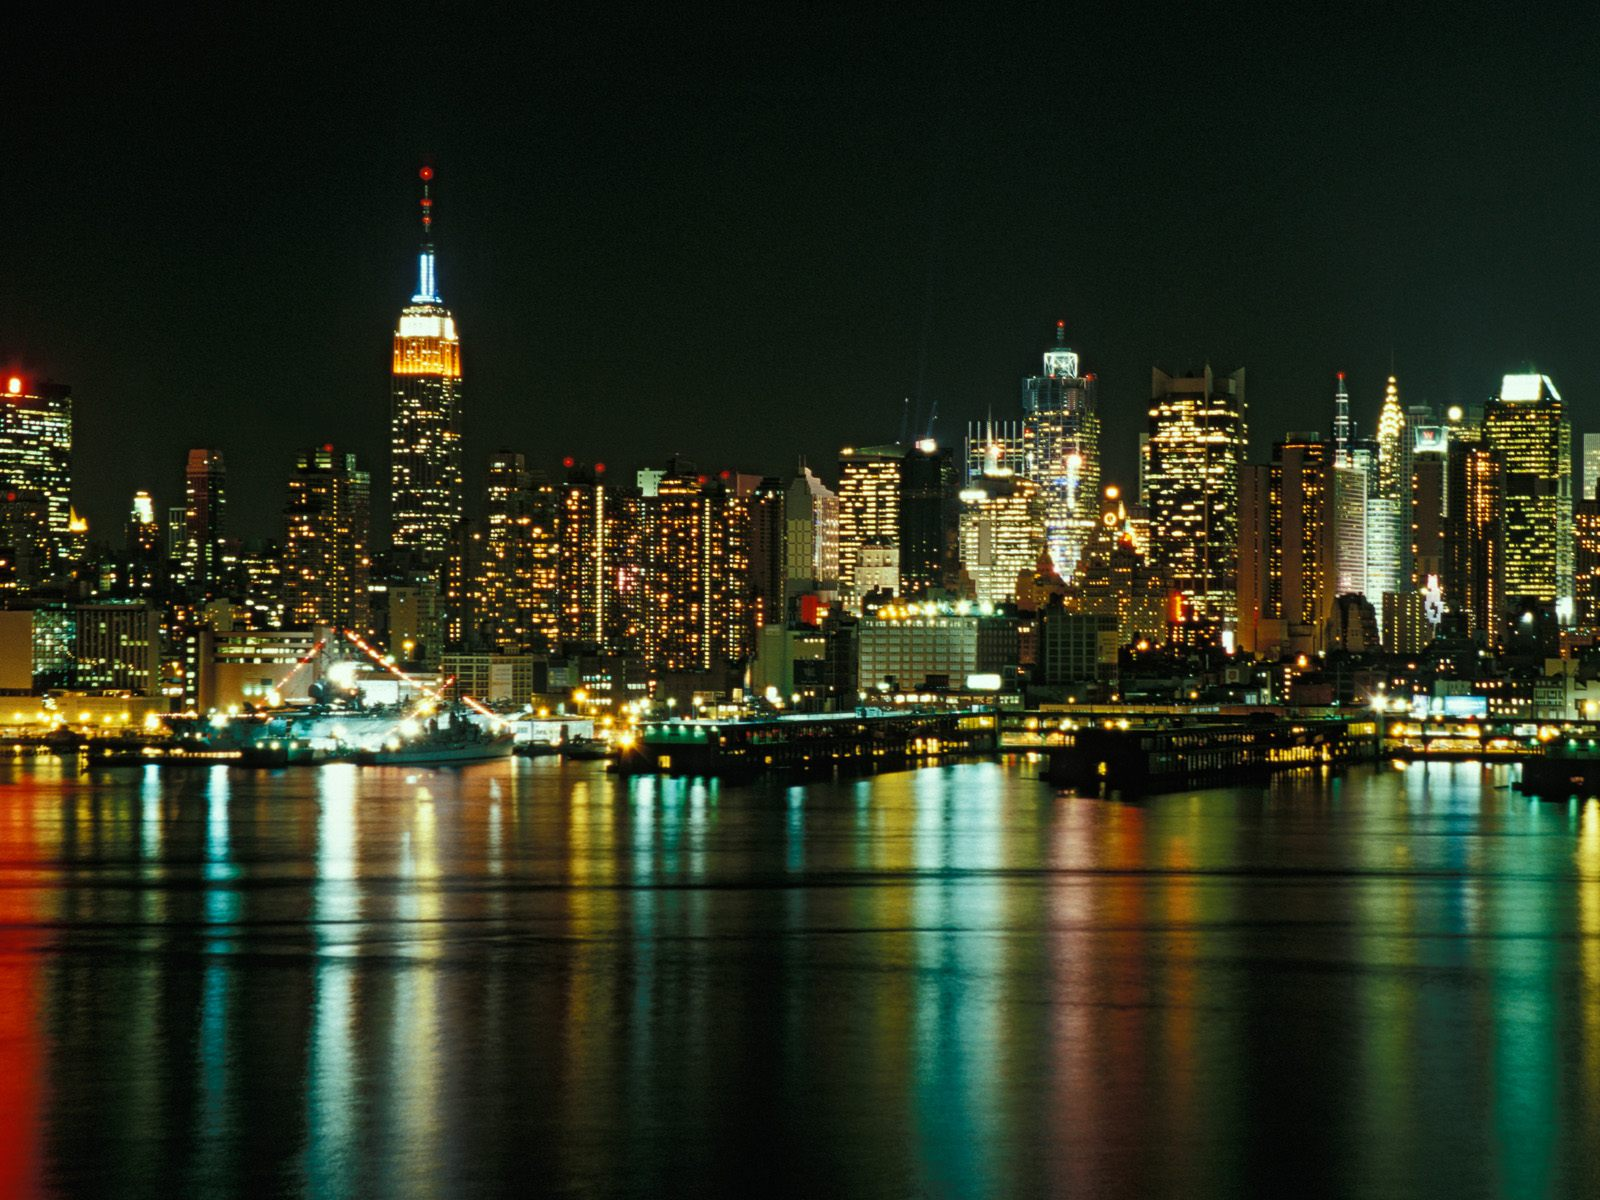 http://3.bp.blogspot.com/-SRLeL7h9swc/TbKMhgrqAeI/AAAAAAAAAME/V8E_RECL3Bg/s1600/New-York-City-Lights-Wallpaper.jpg